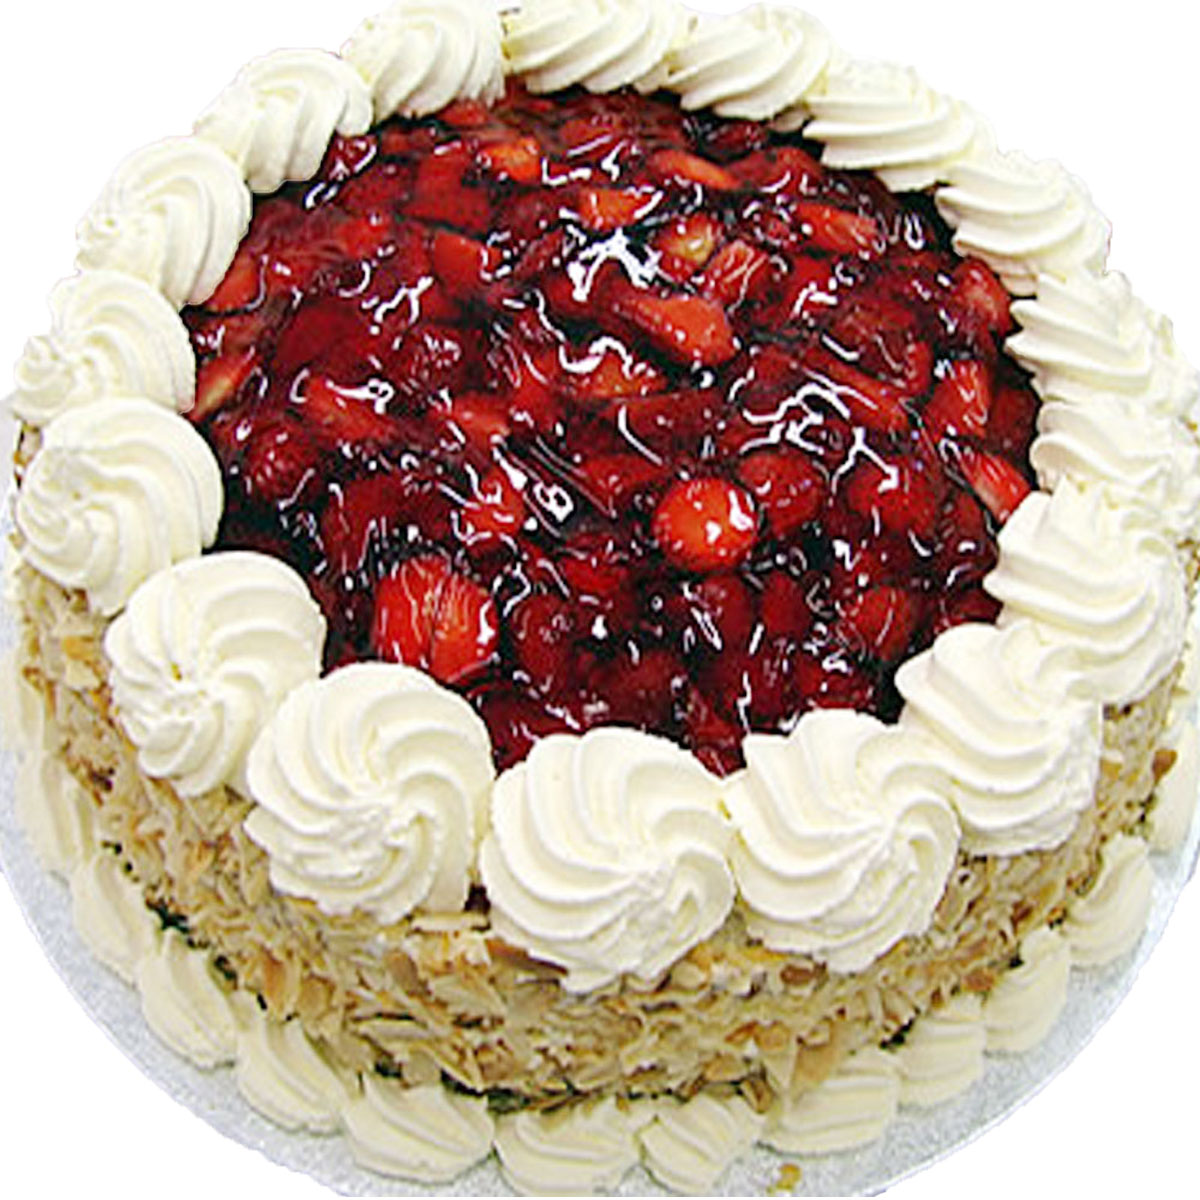 STRAWERRY WITH ALMOND FLAKES, online cake order in gurgaon